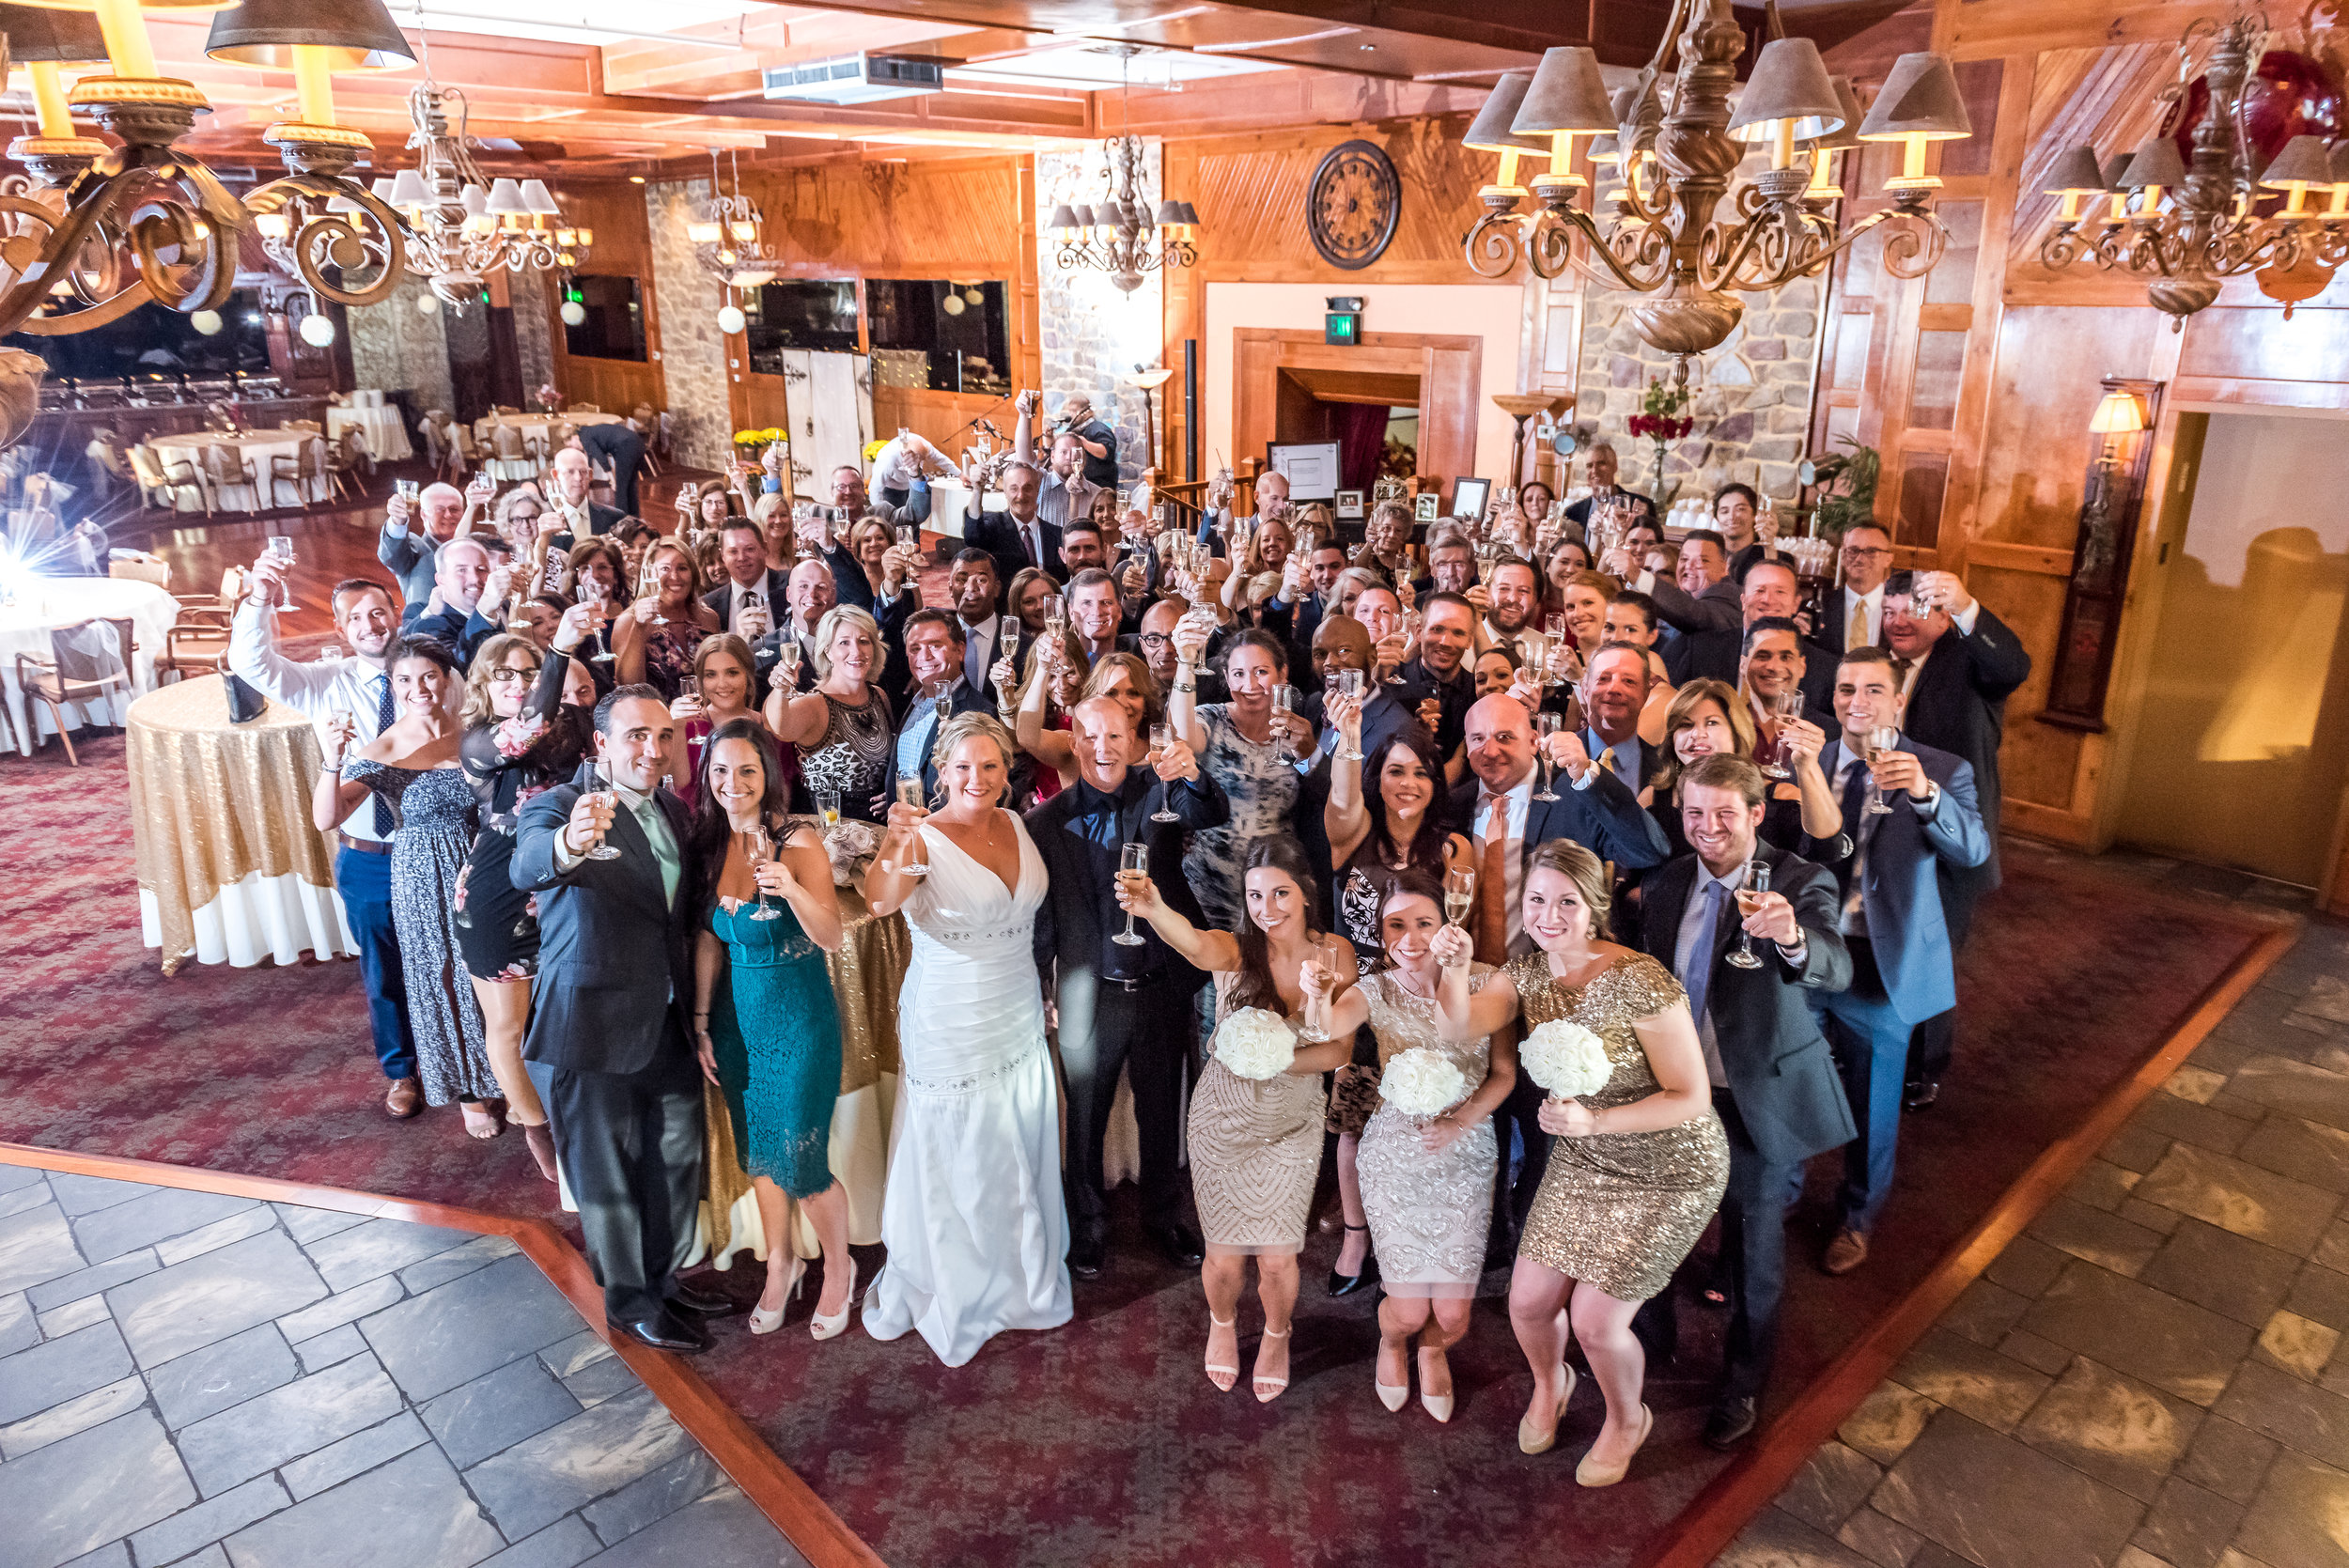 """Right after the """"I do"""" everyone got together for a champagne toast. Epic conclusion to the wedding!"""